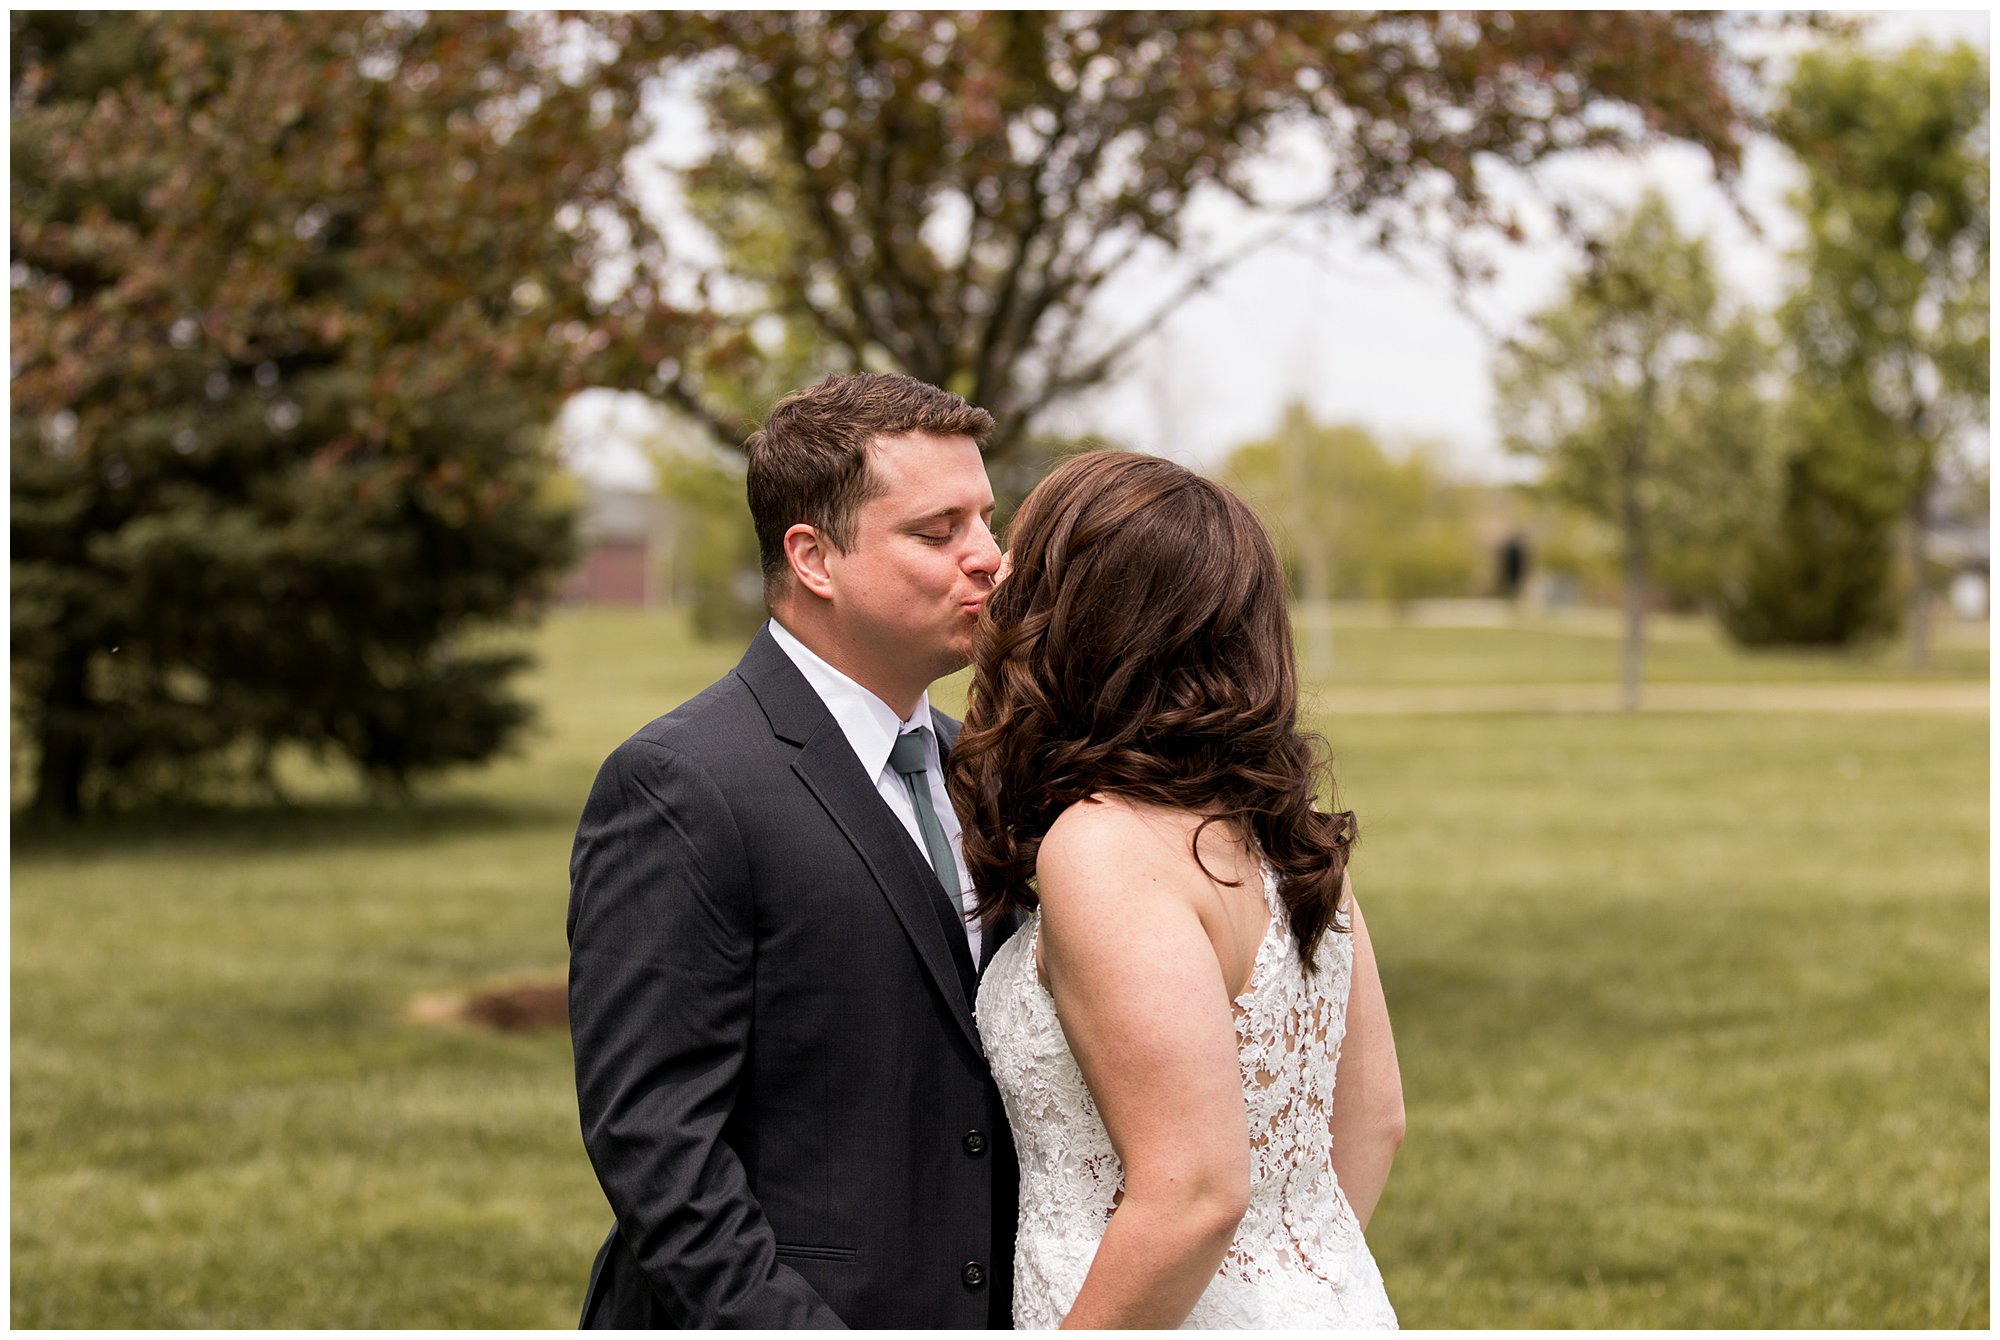 bride and groom kiss after first look at Coxhall Gardens in Carmel Indiana